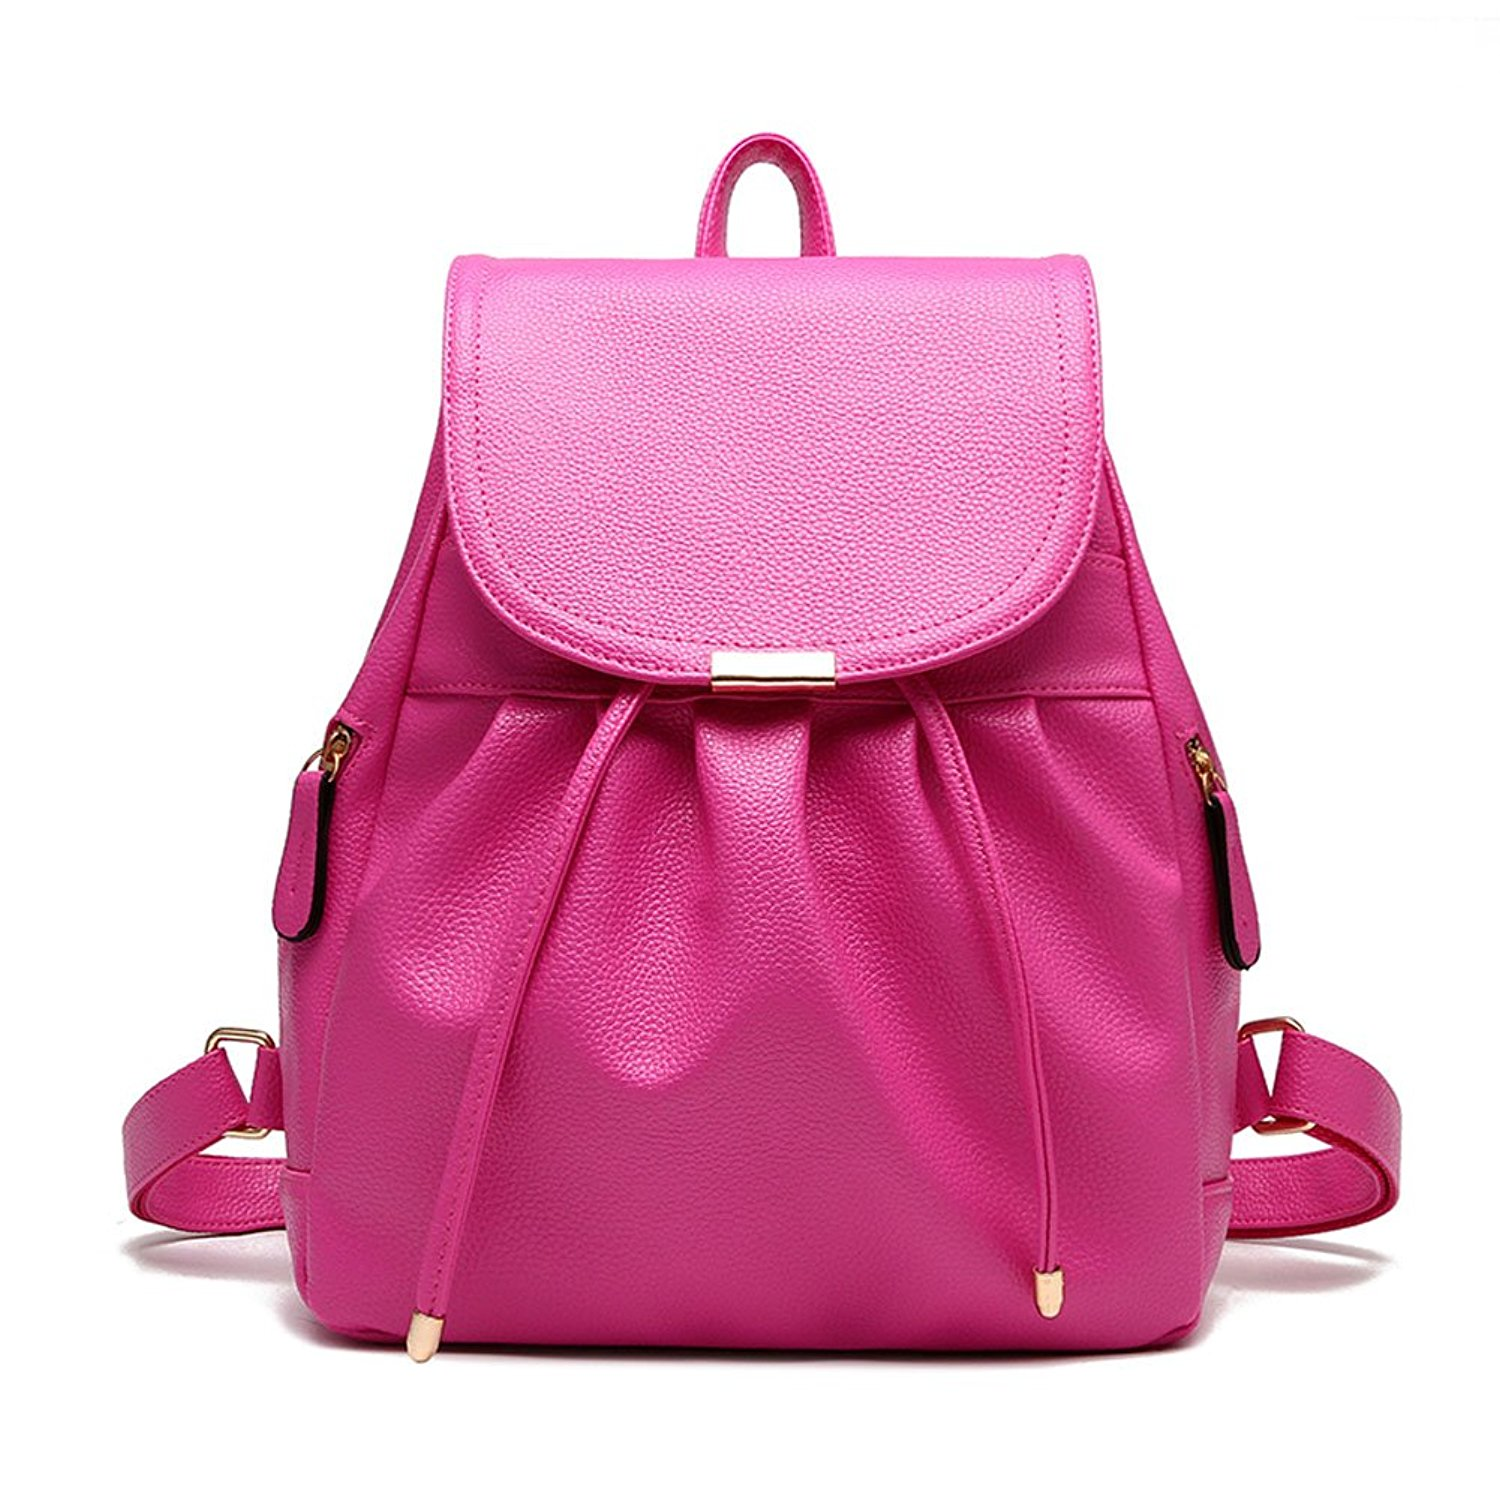 937296c6f0 Get Quotations · Joulifu Classical Retro College Daypack Womens Leather  Backpacks for Girls